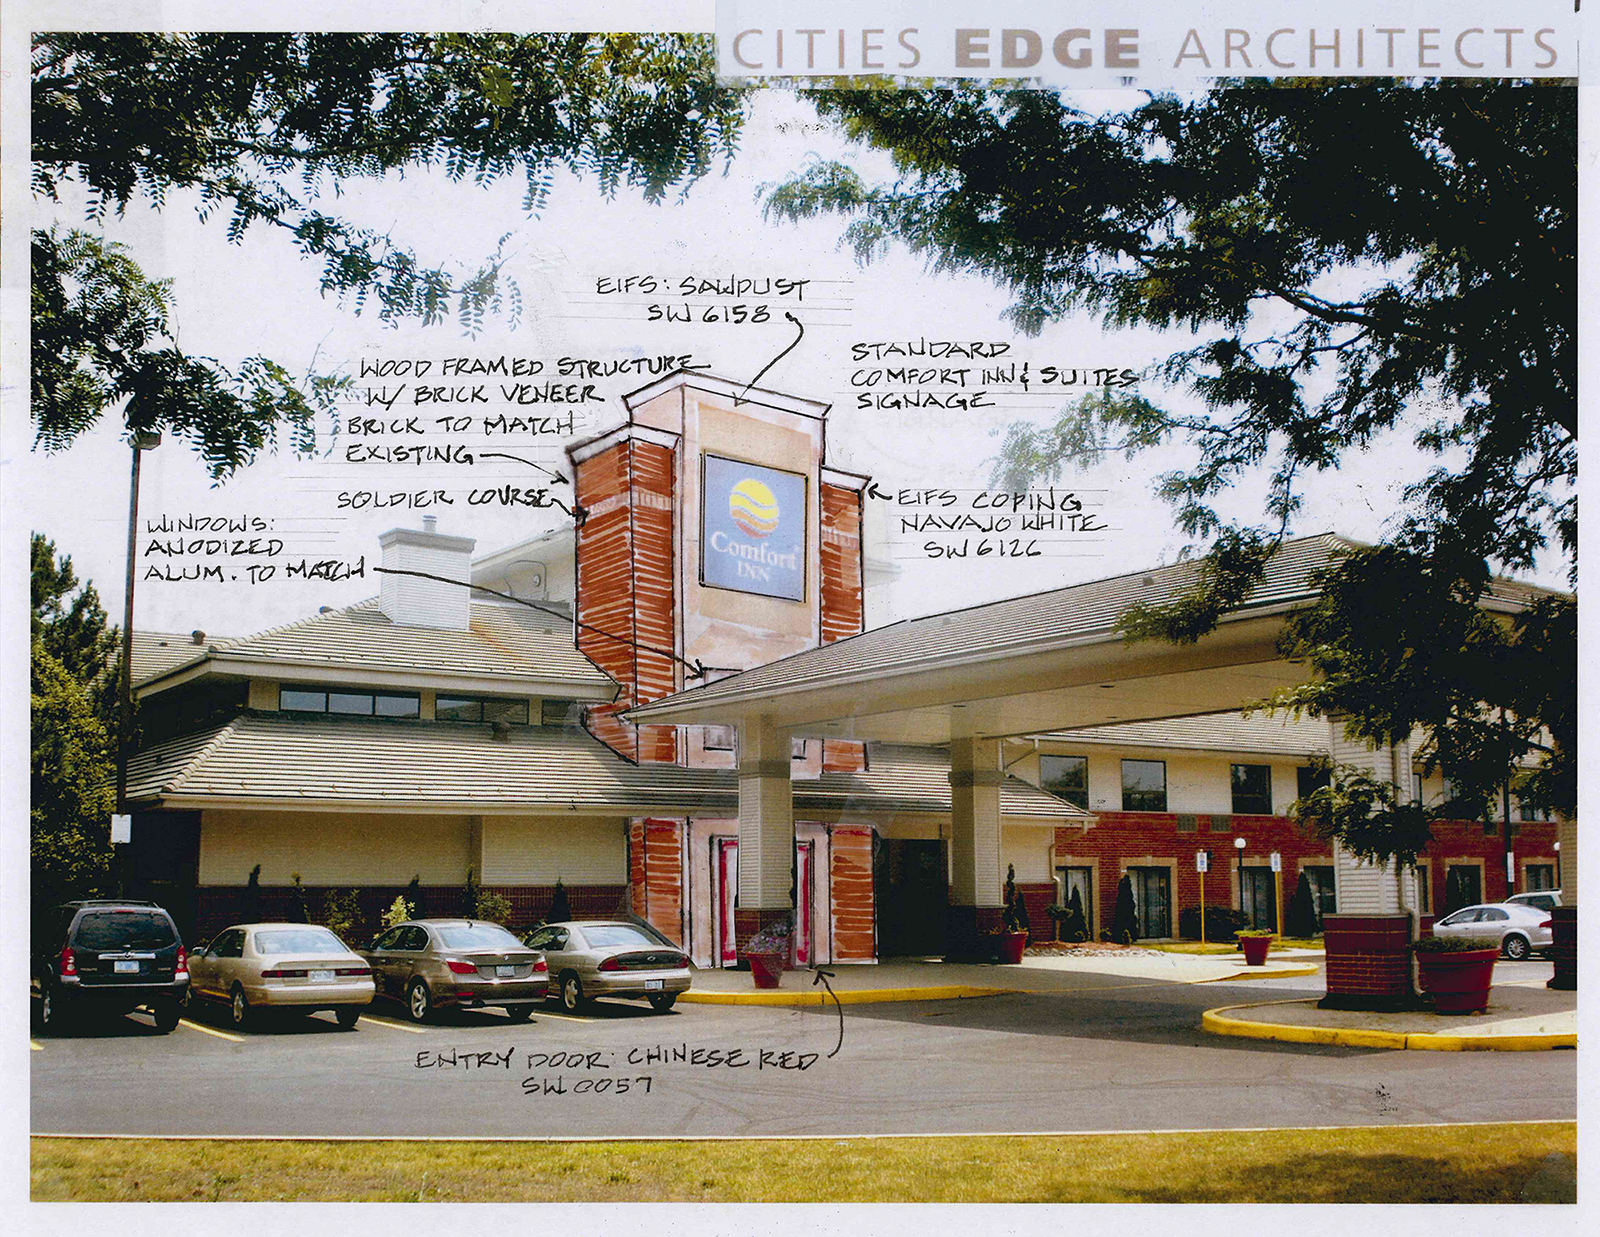 Drawings of the front of hotel